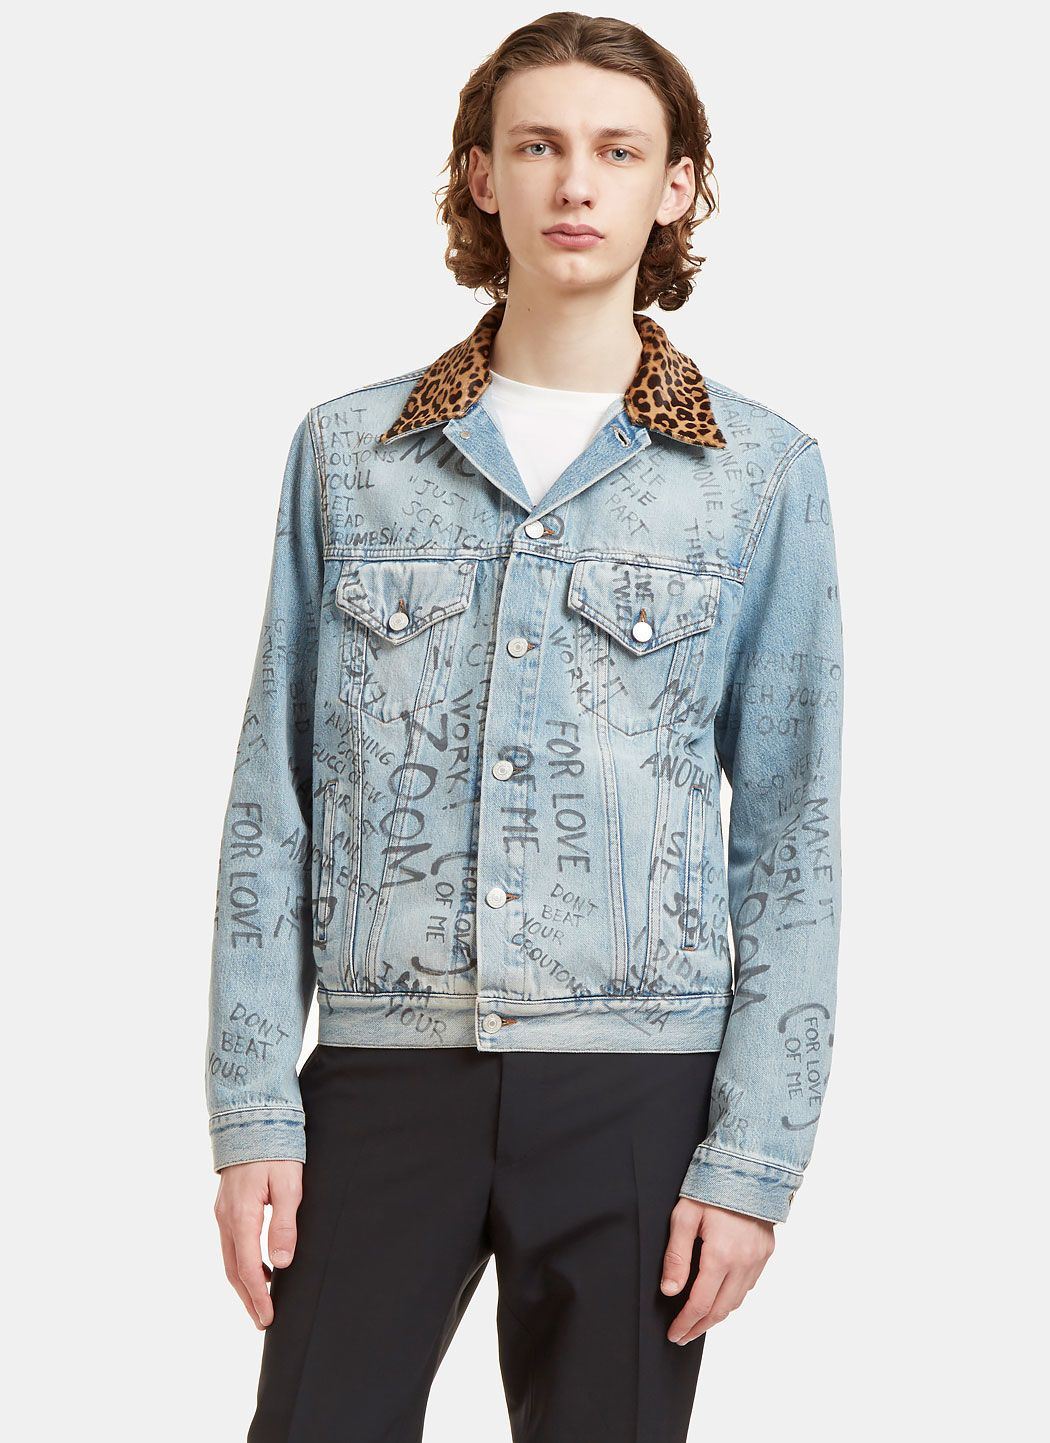 cd6637fda GUCCI Men'S Leopard Print Collared Graffiti Denim Jacket In Blue. #gucci  #cloth #